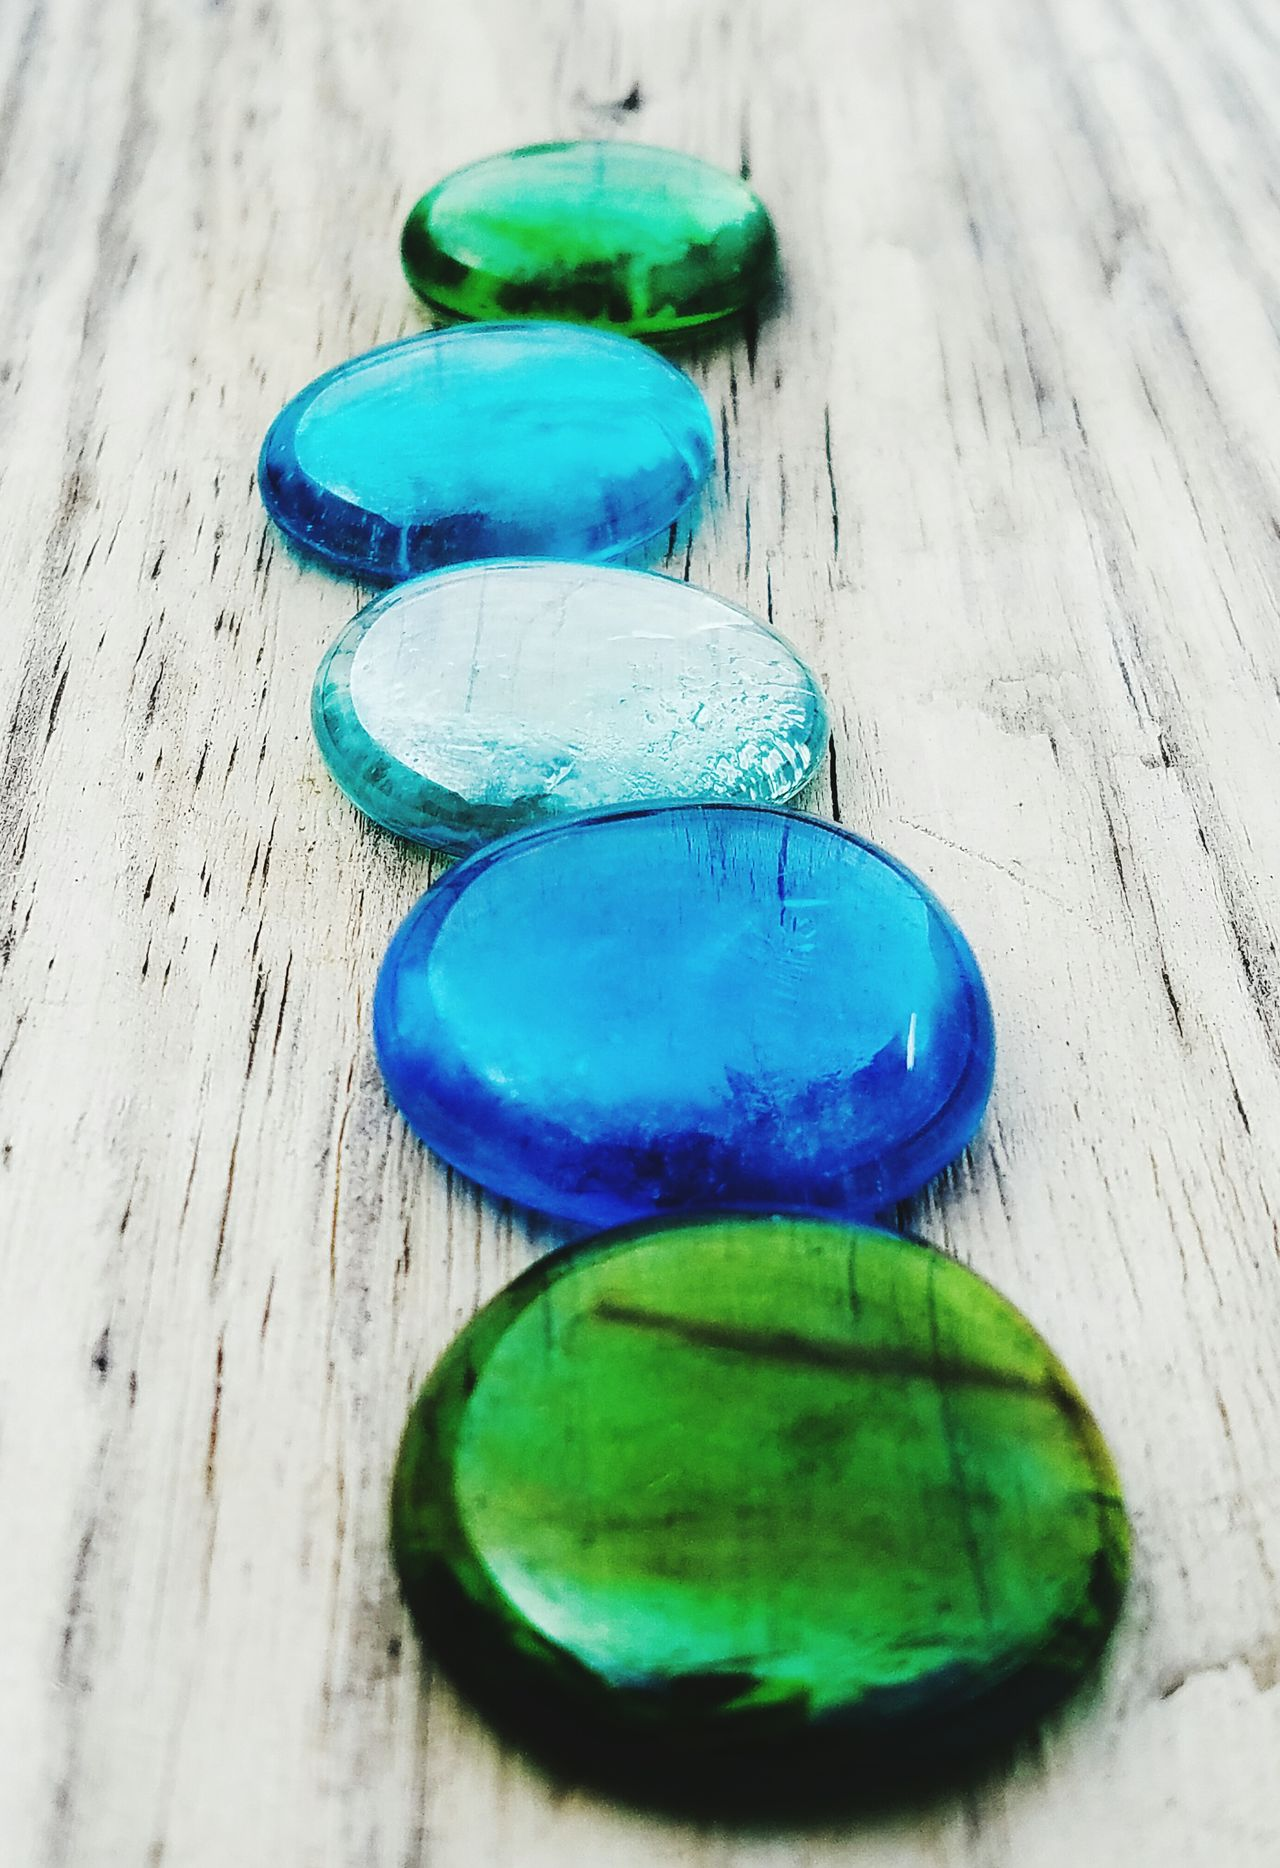 Cerulean Blue Intensity Stones Wood Grain Jewels Bright Green Balance AndroidPhotography EyeEm Best Shots Eyem Gallery Shiny Cellphone Photography